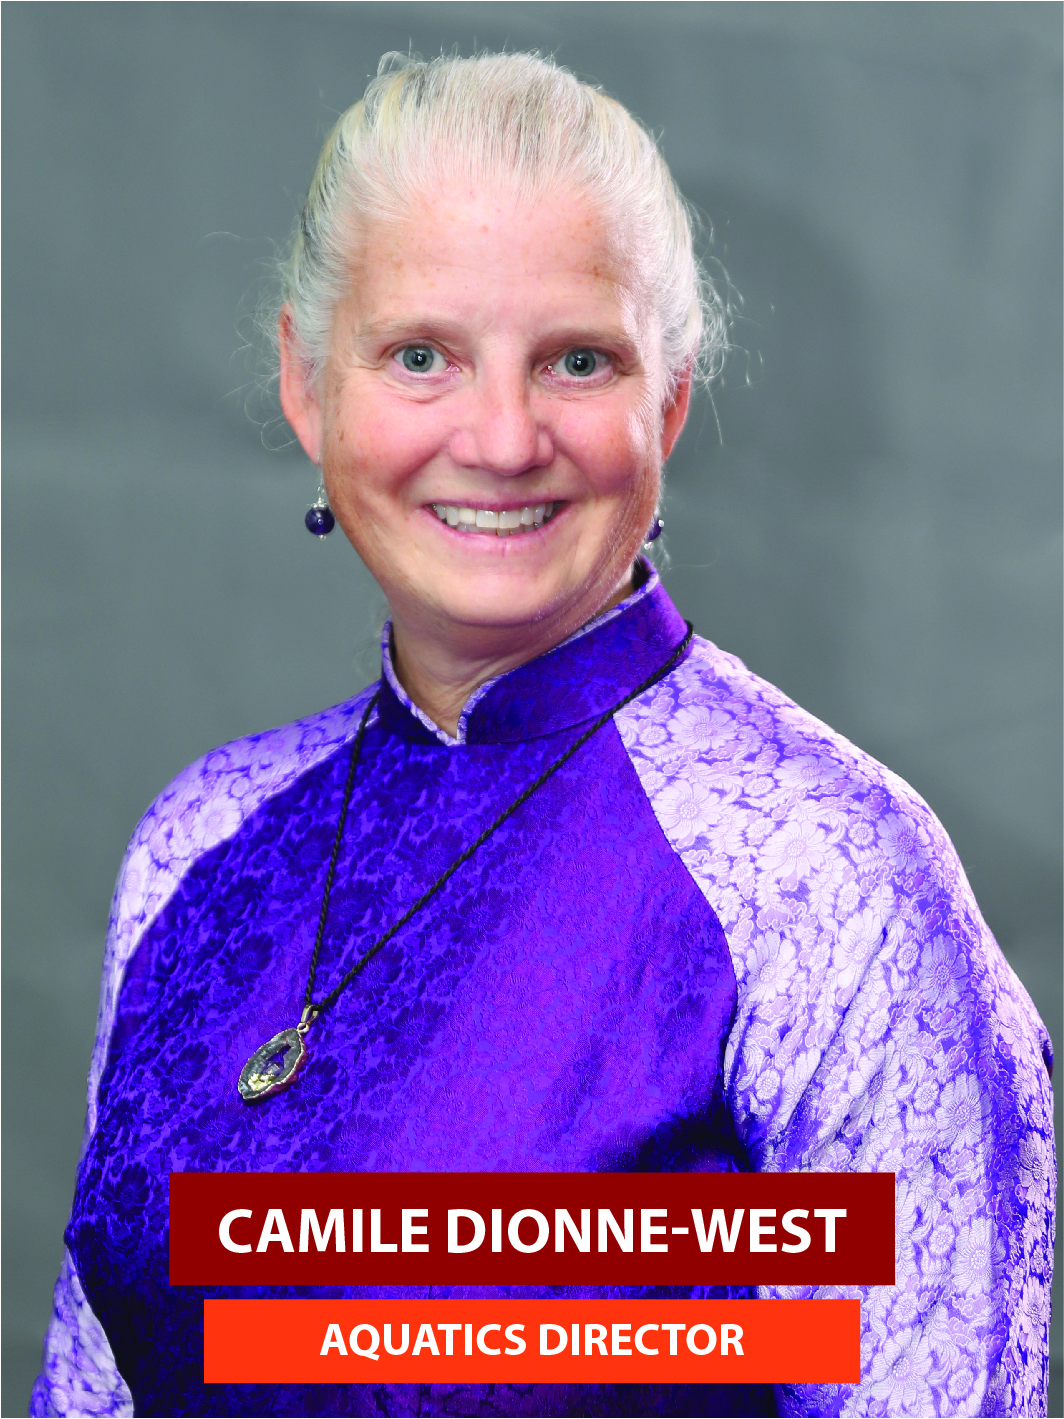 CAMILE DIONNE-WEST